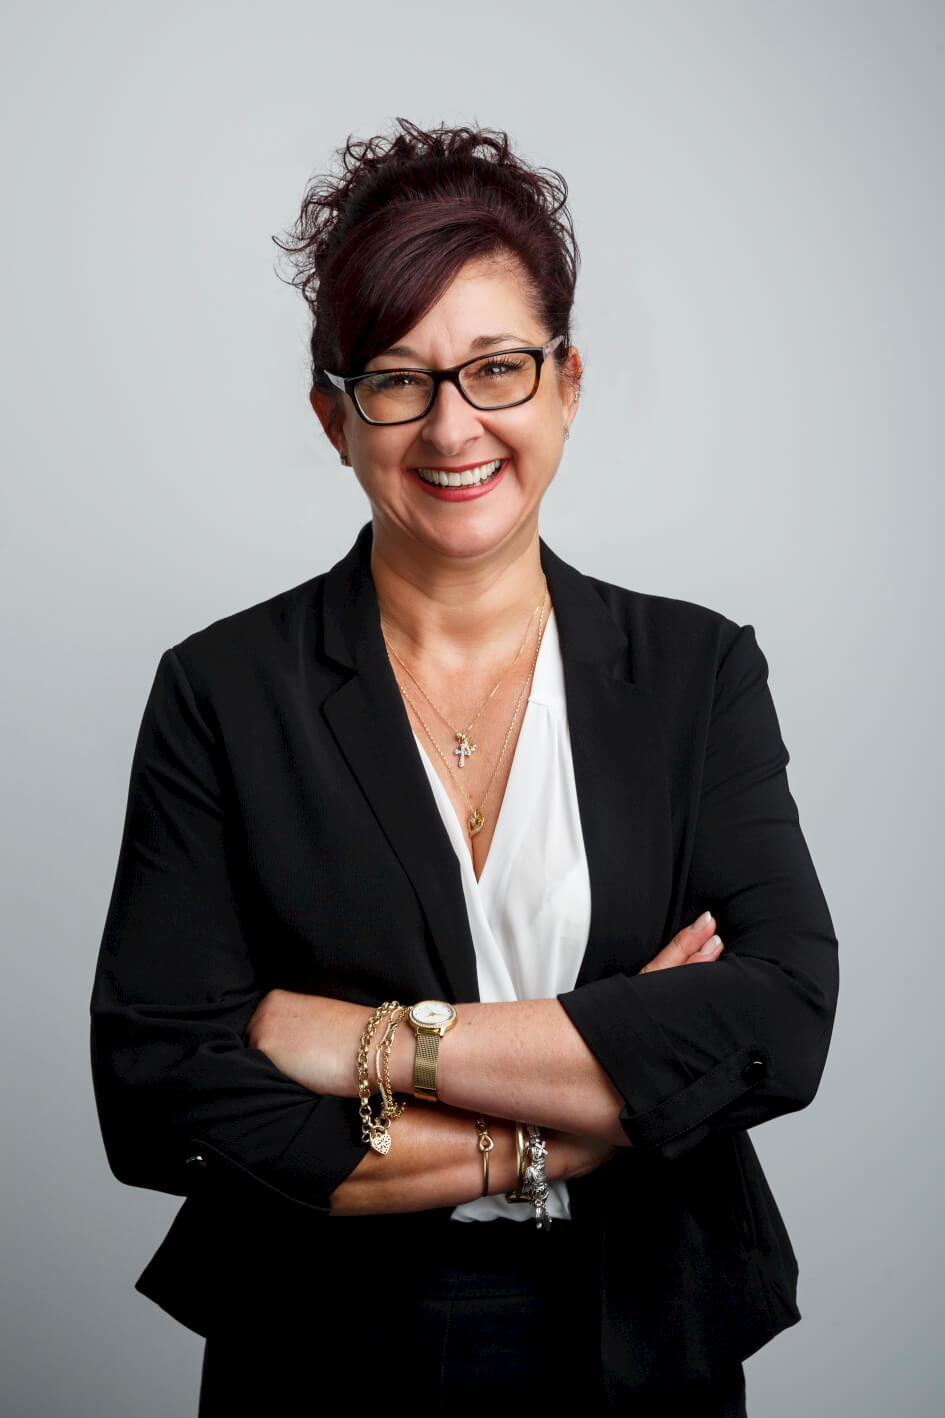 Client Services Officer Alisha Pleysier - Here Business & Wealth